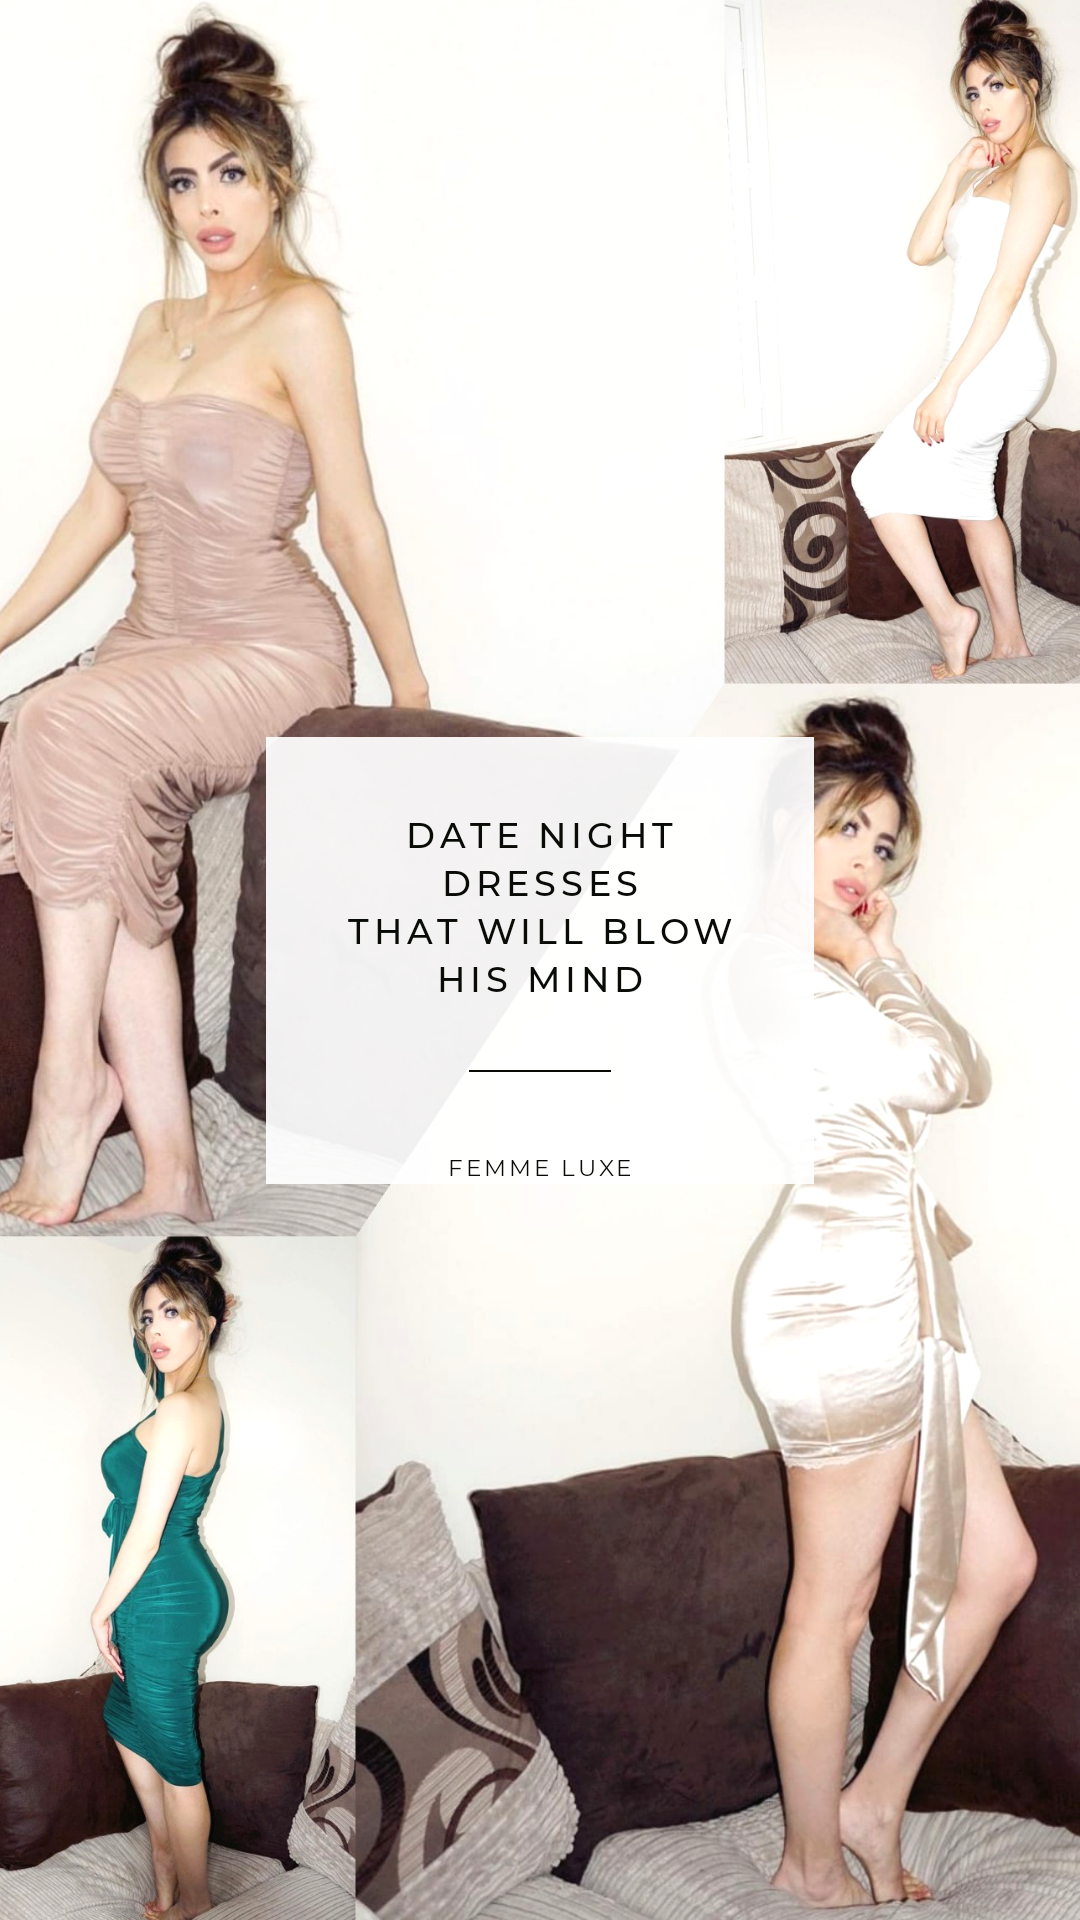 DATE NIGHT DRESSES SURE TO BLOW HIS MIND